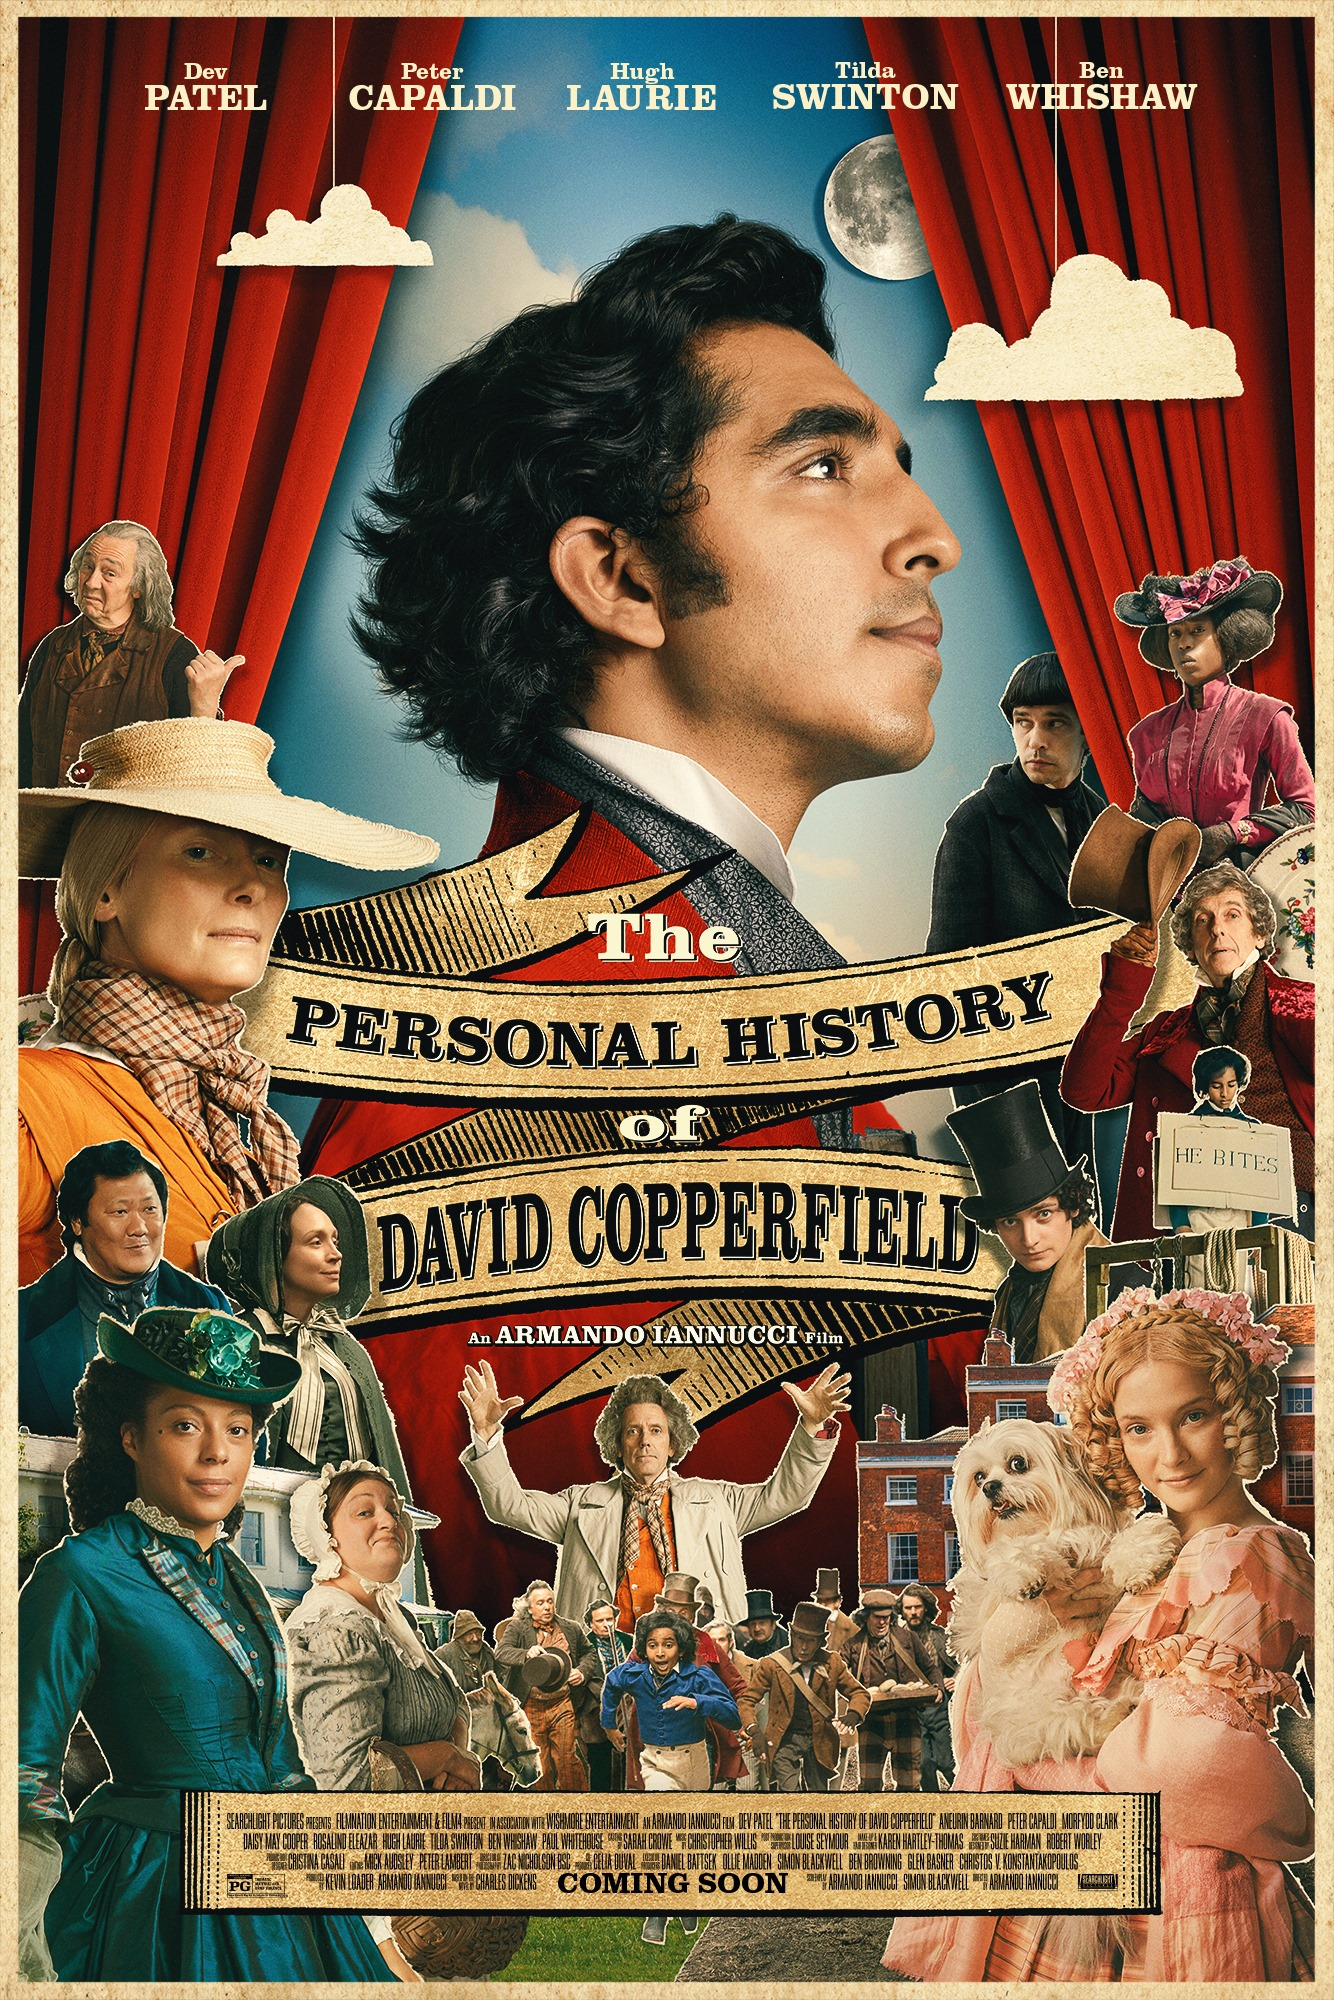 Movie poster image for THE PERSONAL HISTORY OF DAVID COPPERFIELD